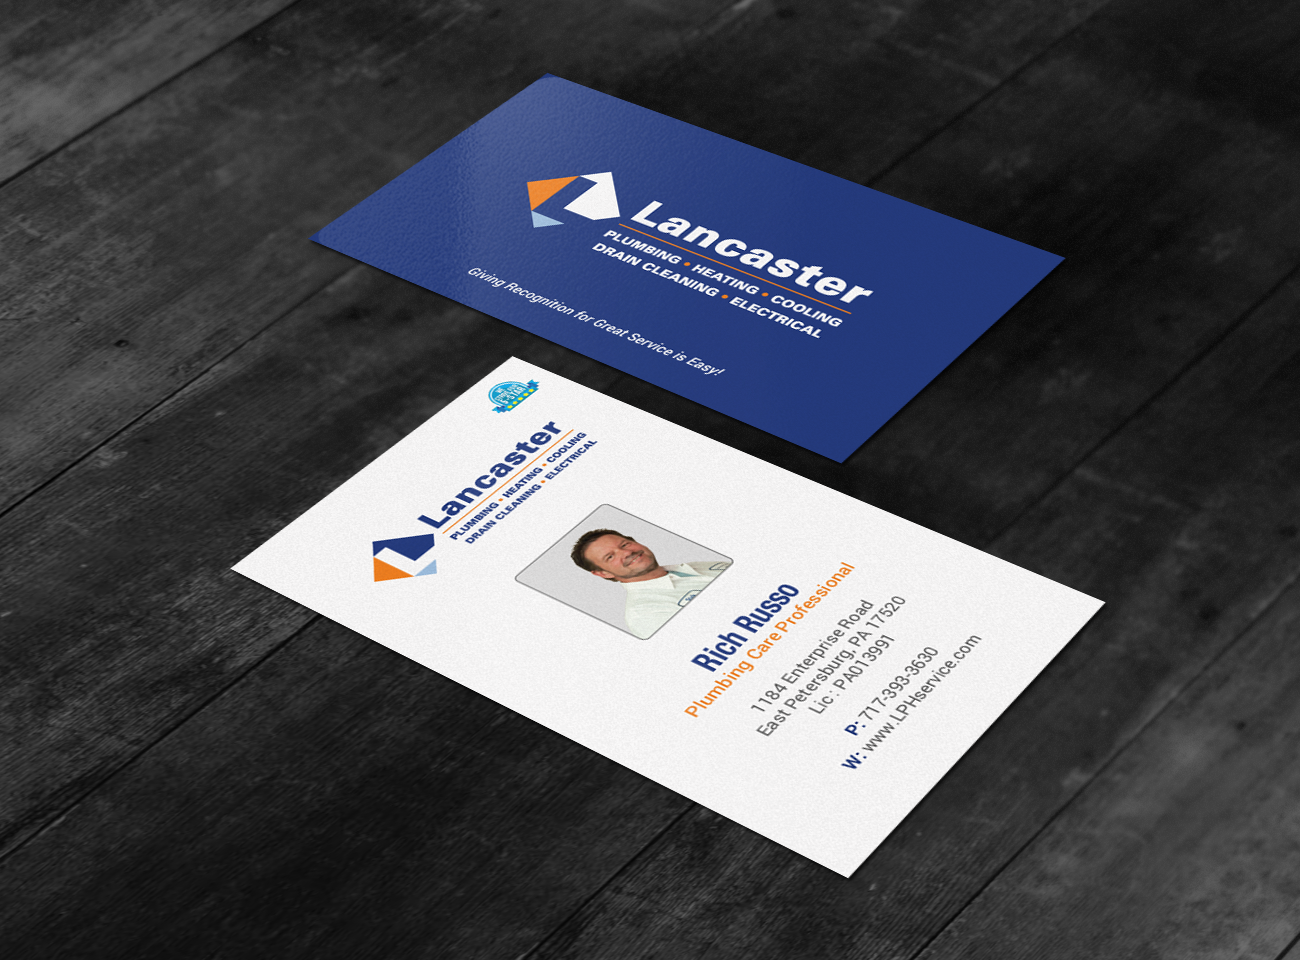 Professional playful residential construction business card design business card design by chandrayaaneative for lancaster plumbing heating design 15044497 colourmoves